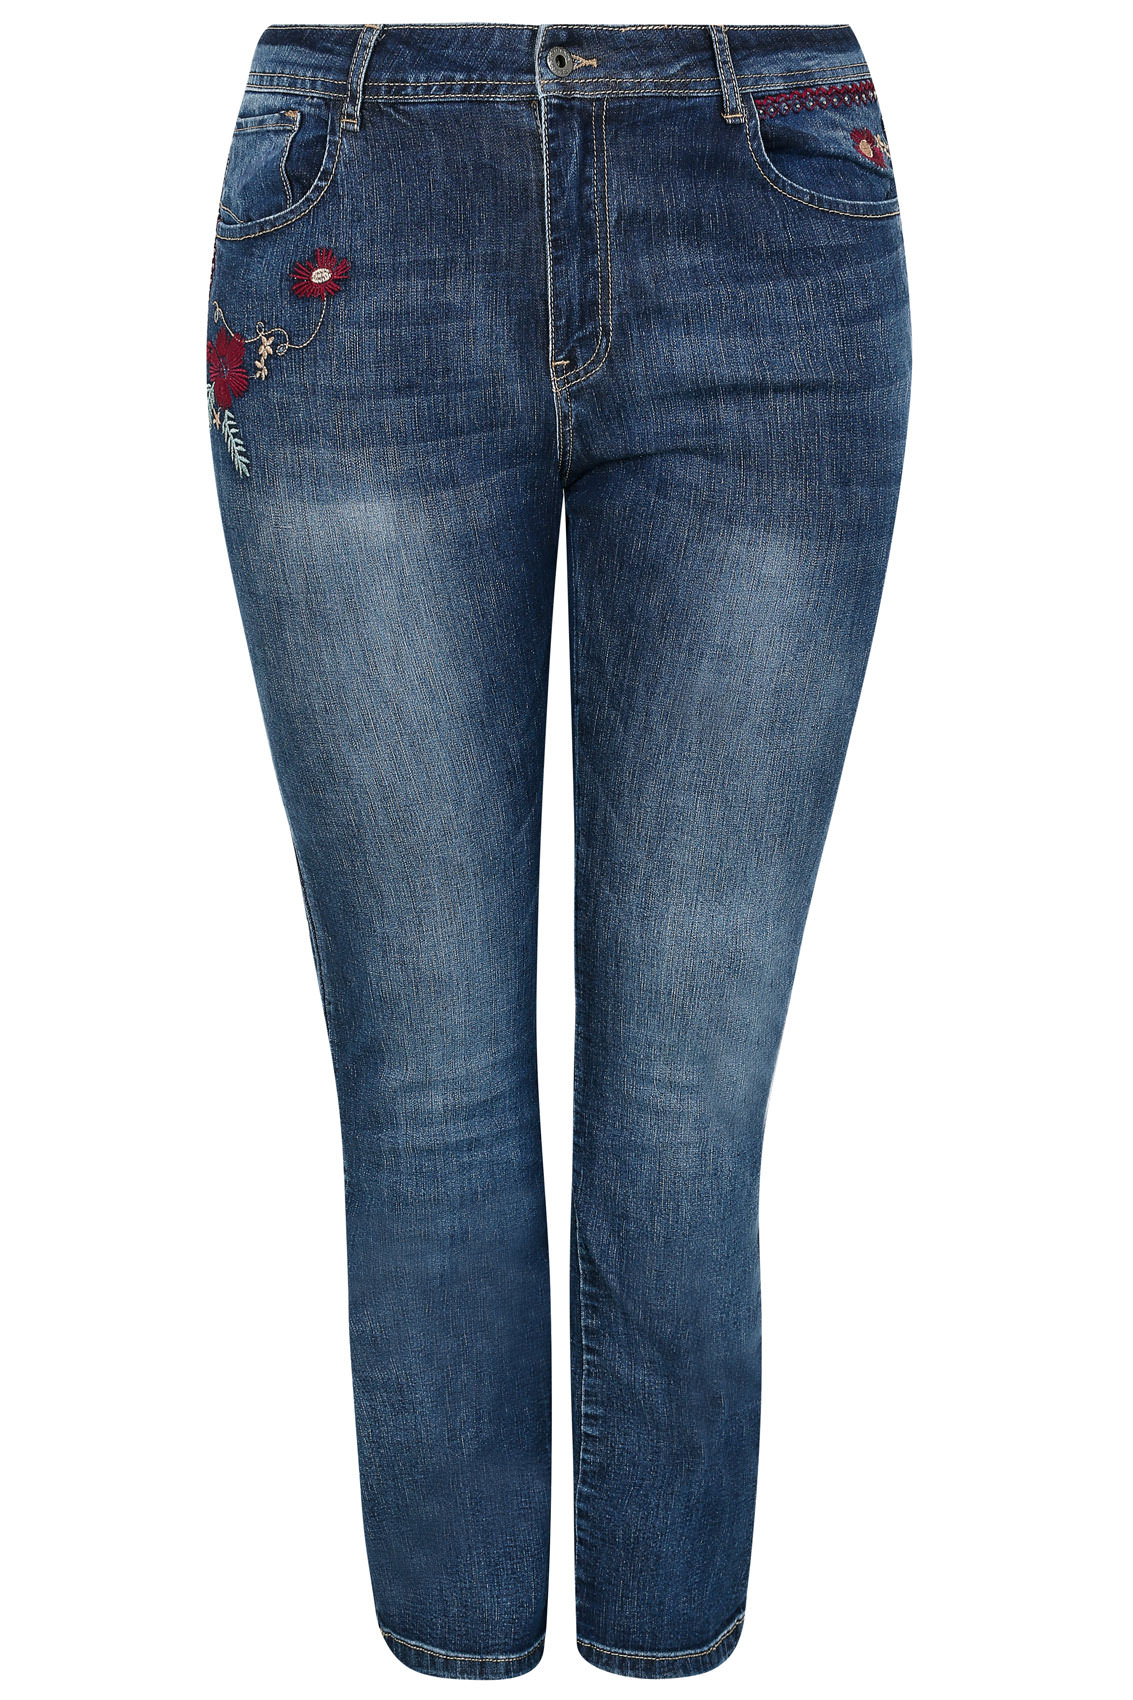 Paprika indigo embroidered faded bootcut jeans plus size